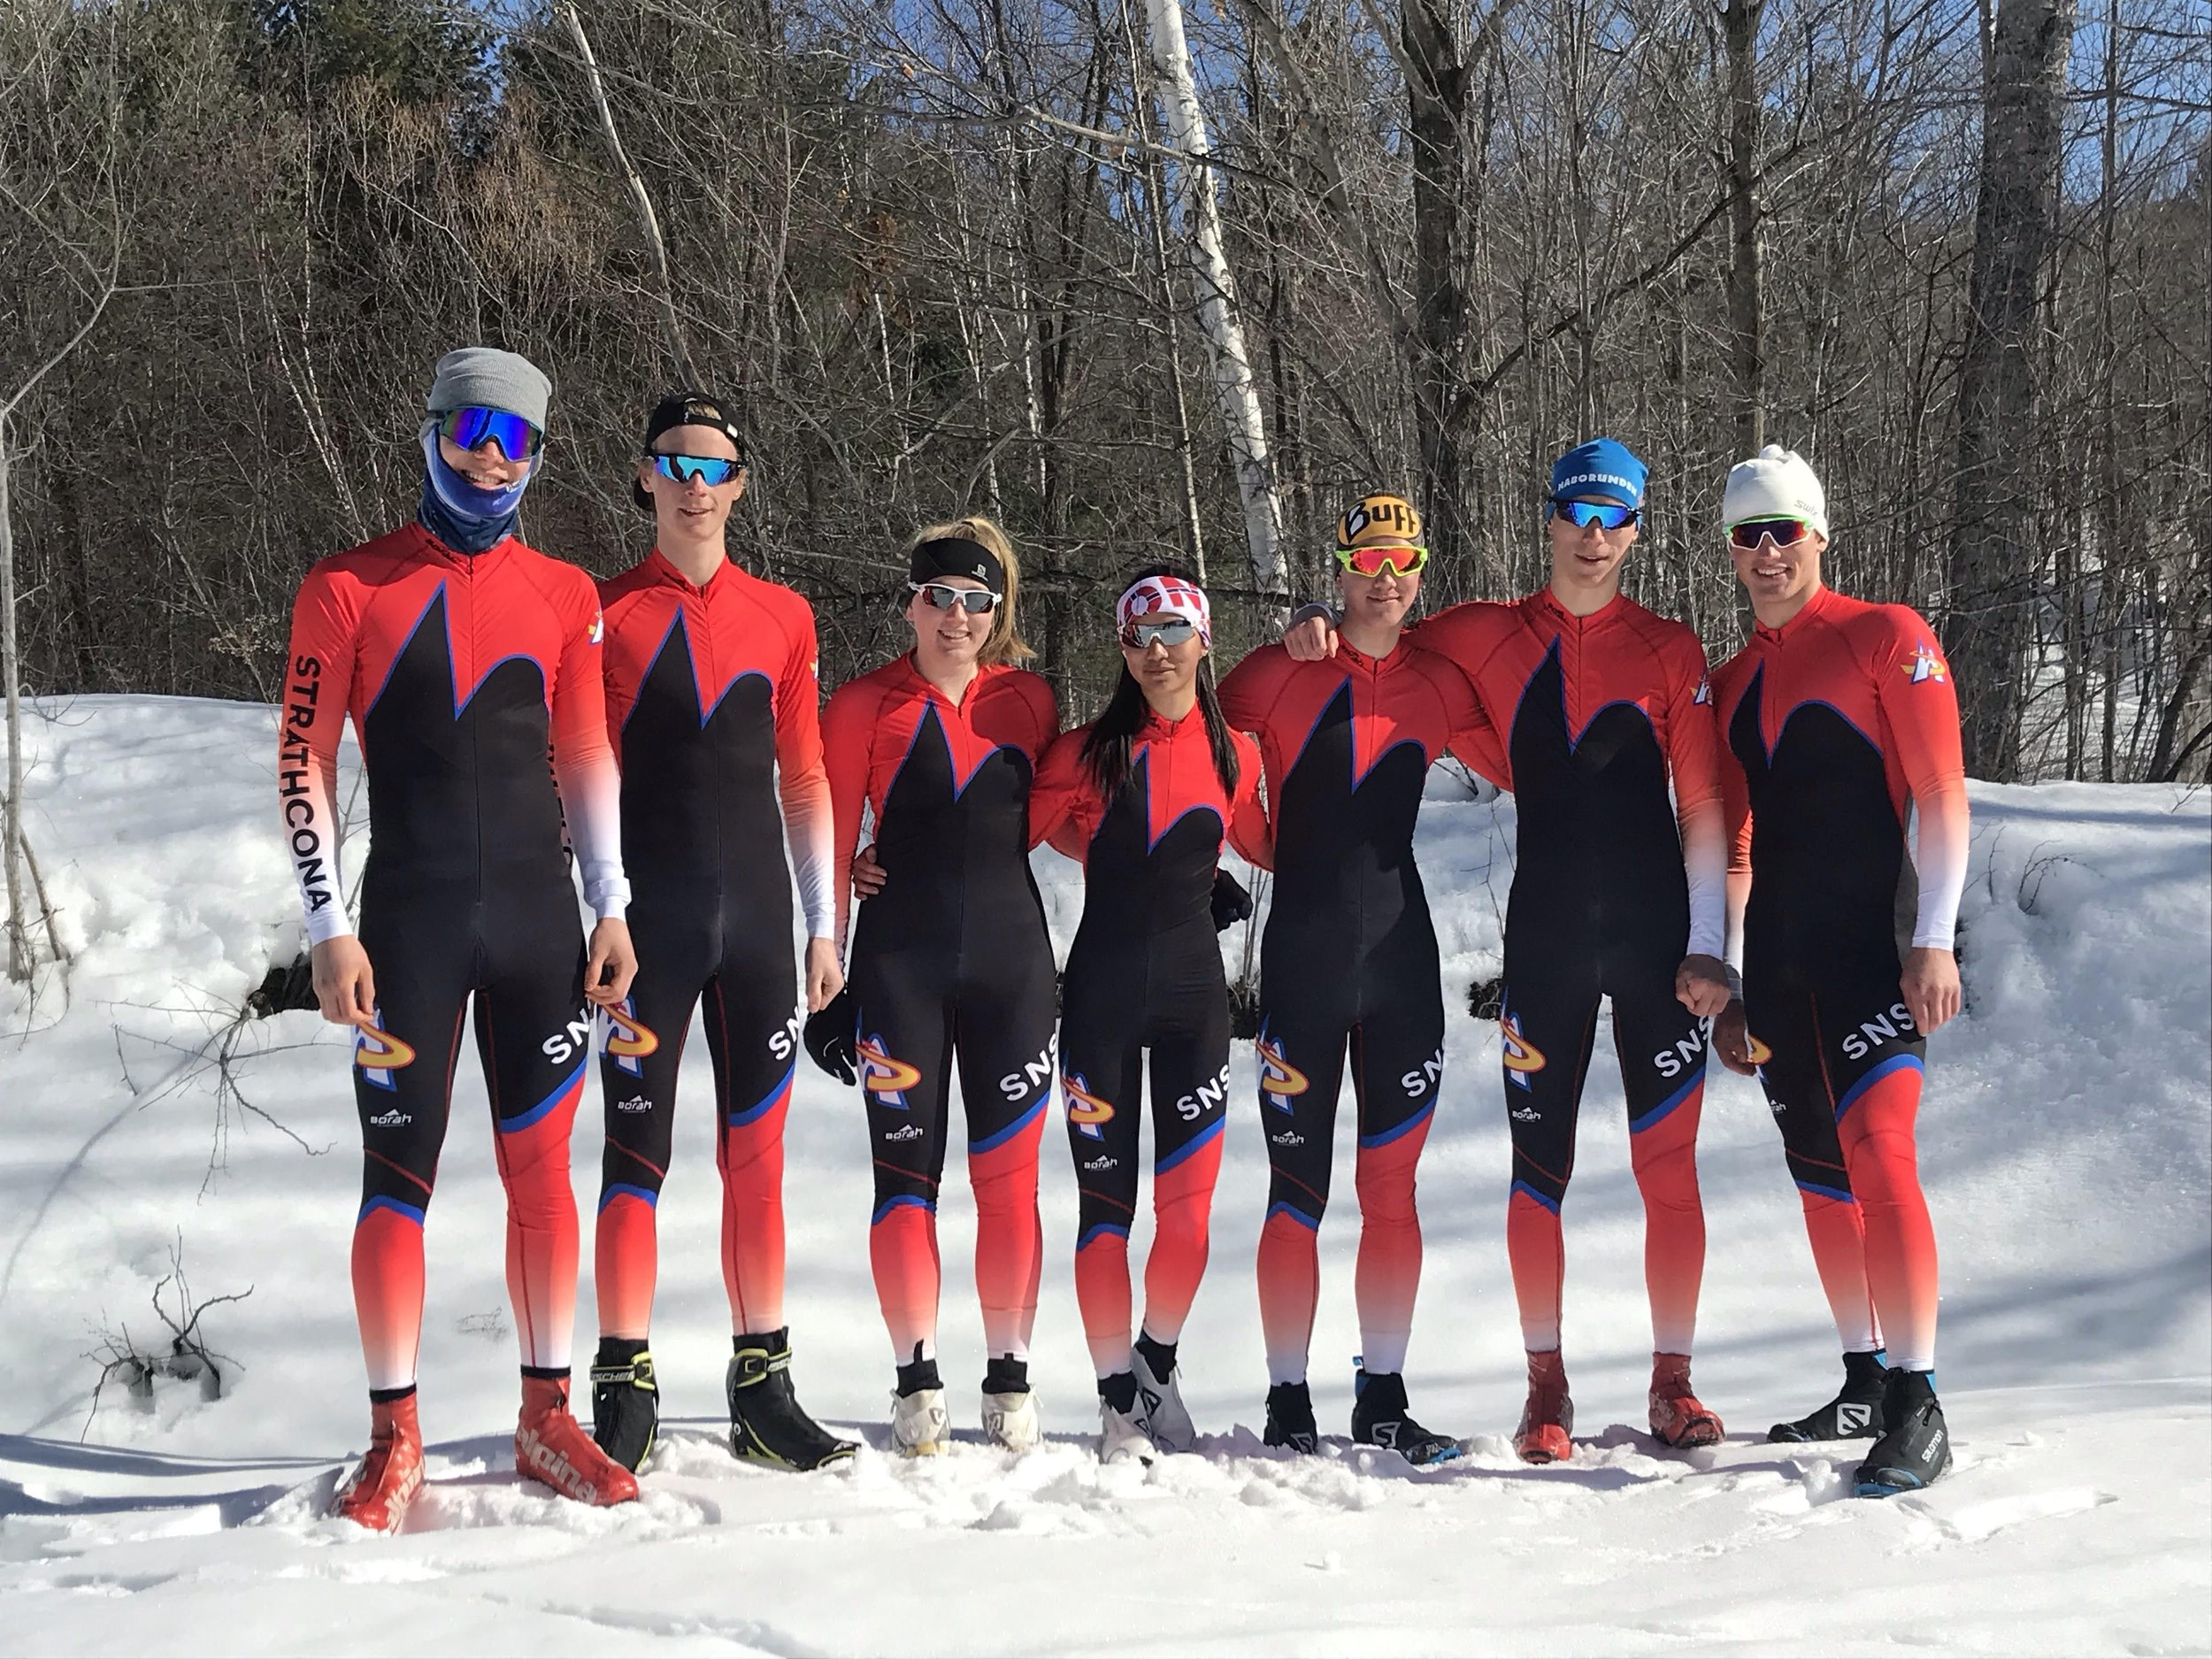 SNSC Junior Racers in their new race suits